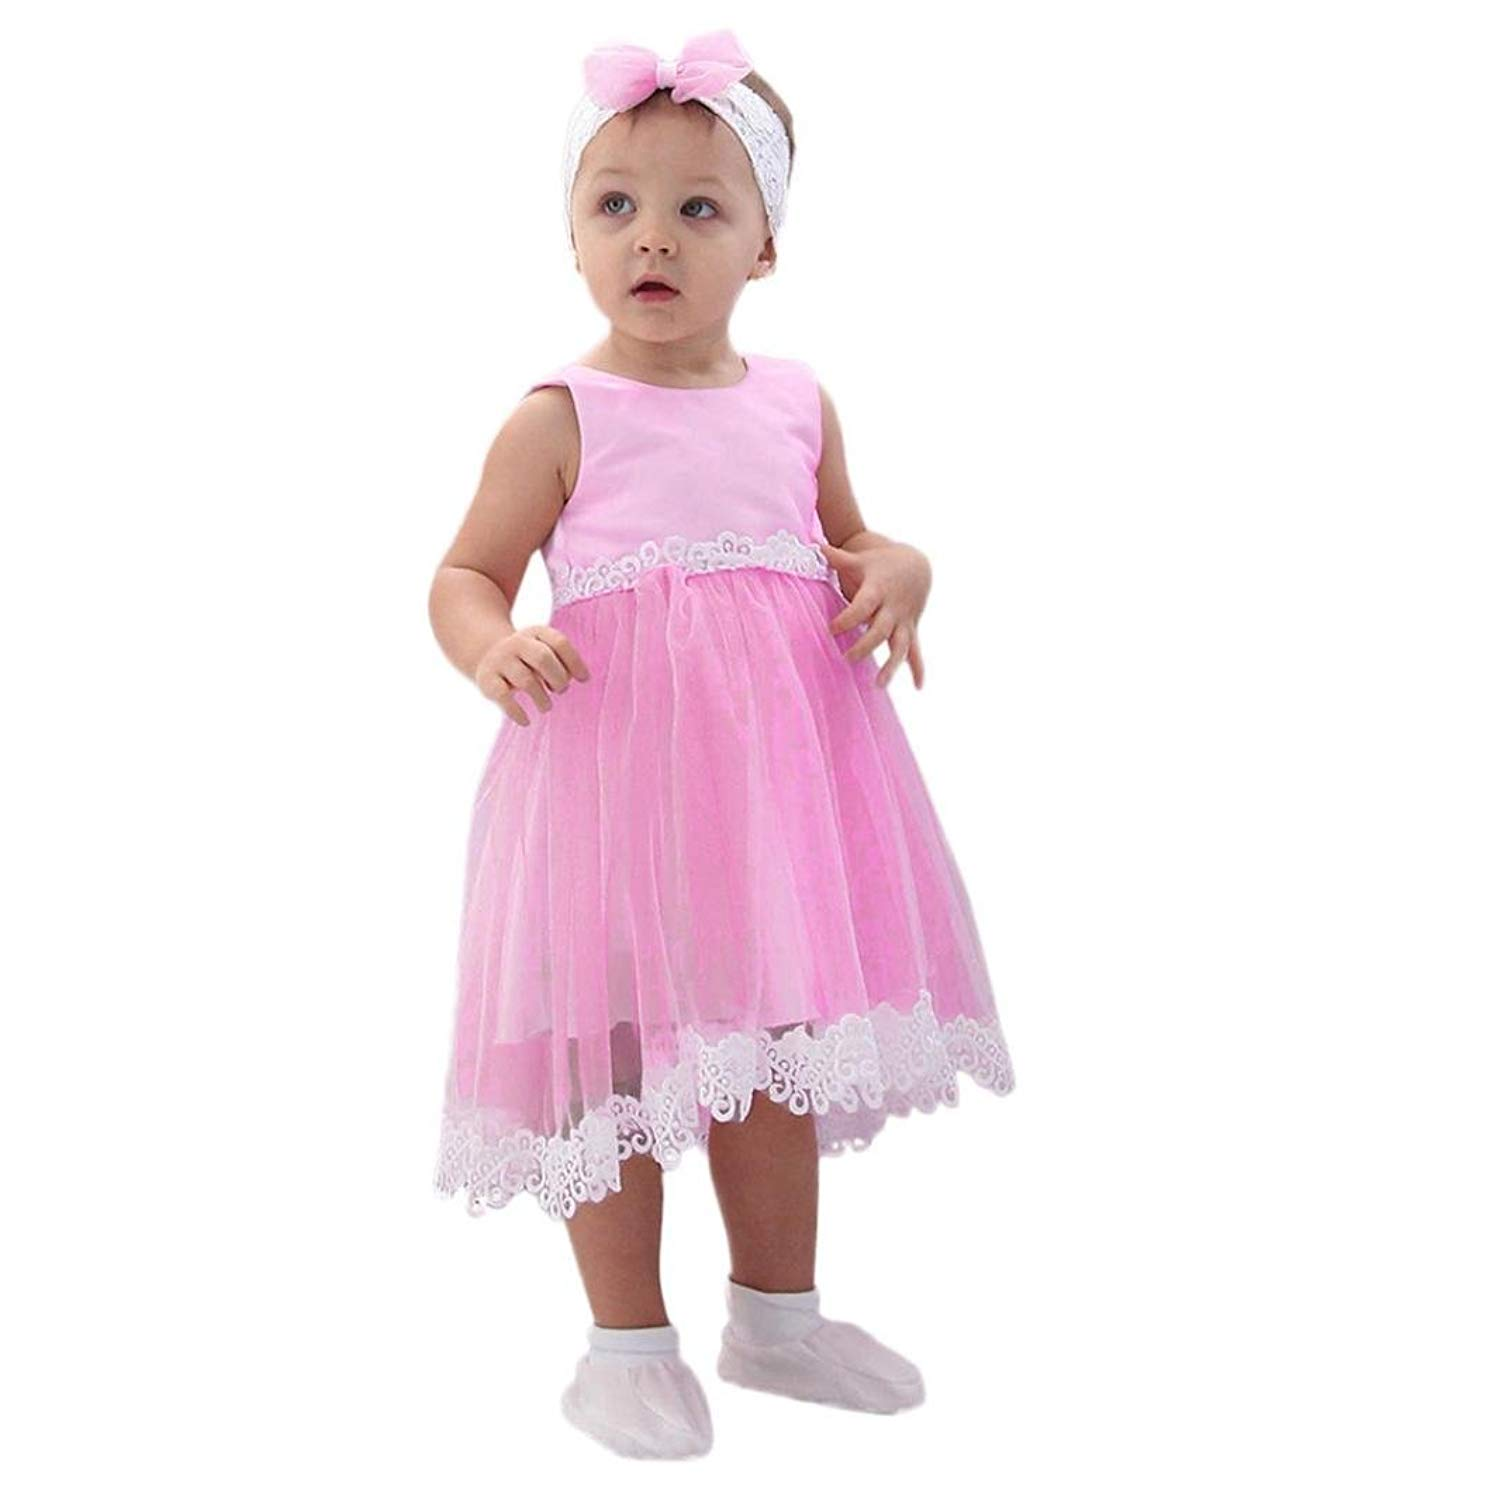 TiTCool Little Girls Princess Dress, Toddler Lace Hem Sleeveless Dress Size 2-6T